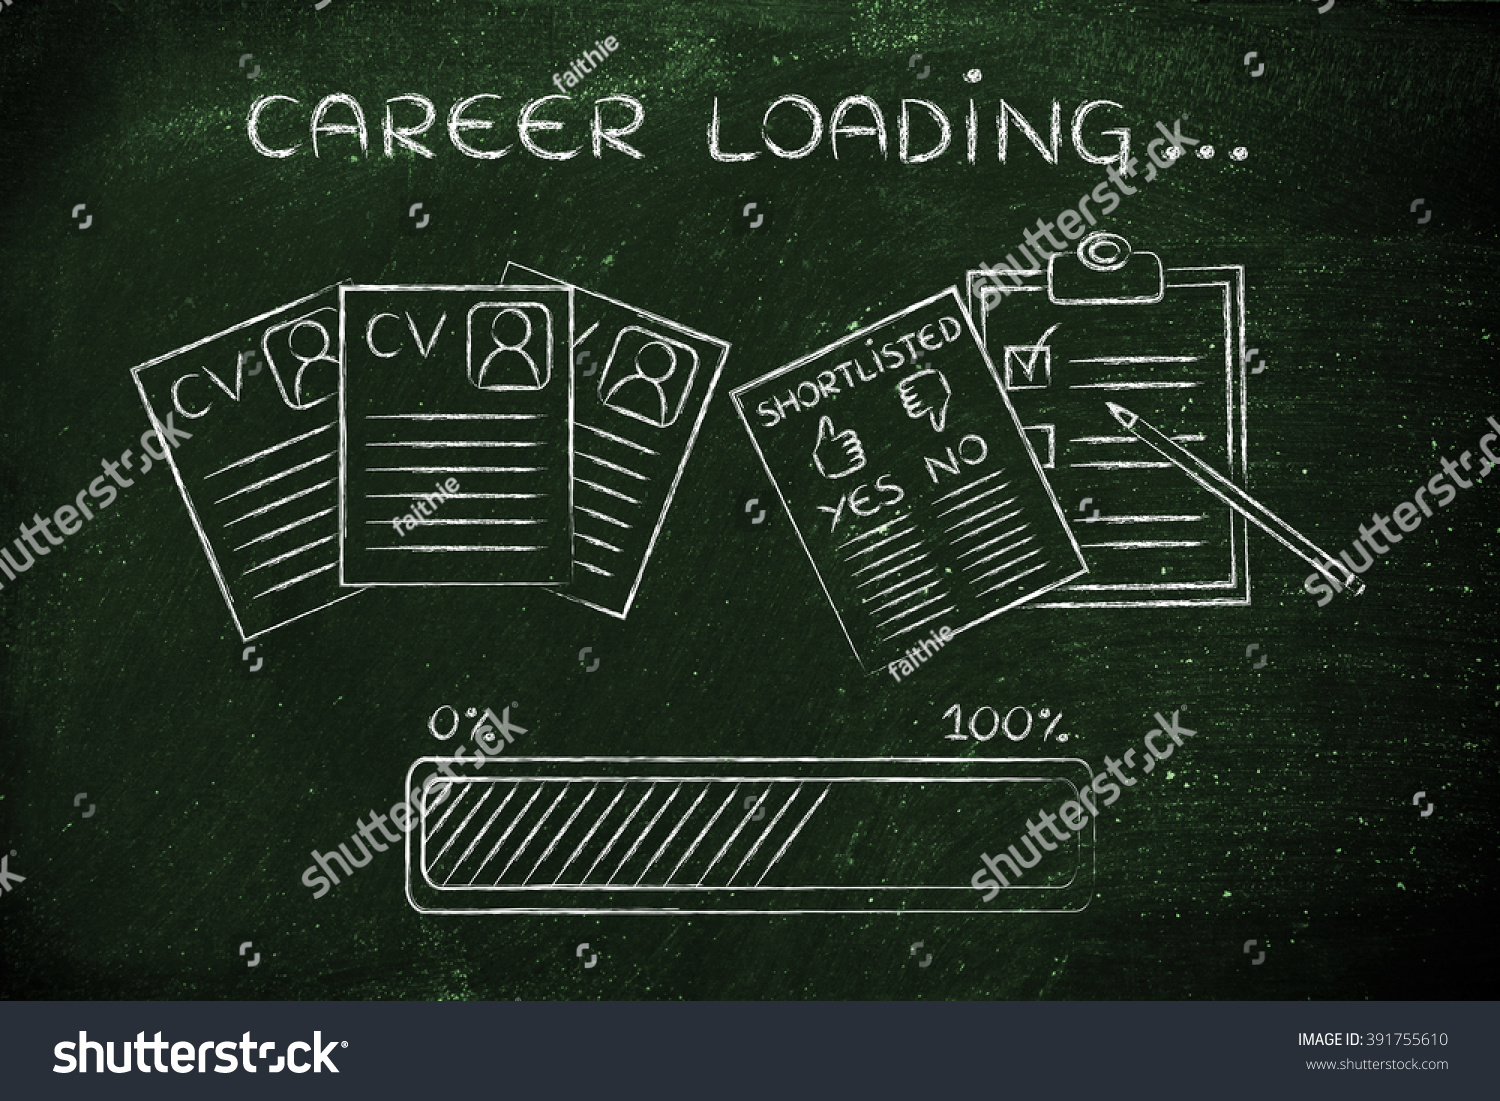 Career Loading CV Shortlist Candidates Progress Stock Illustration ...